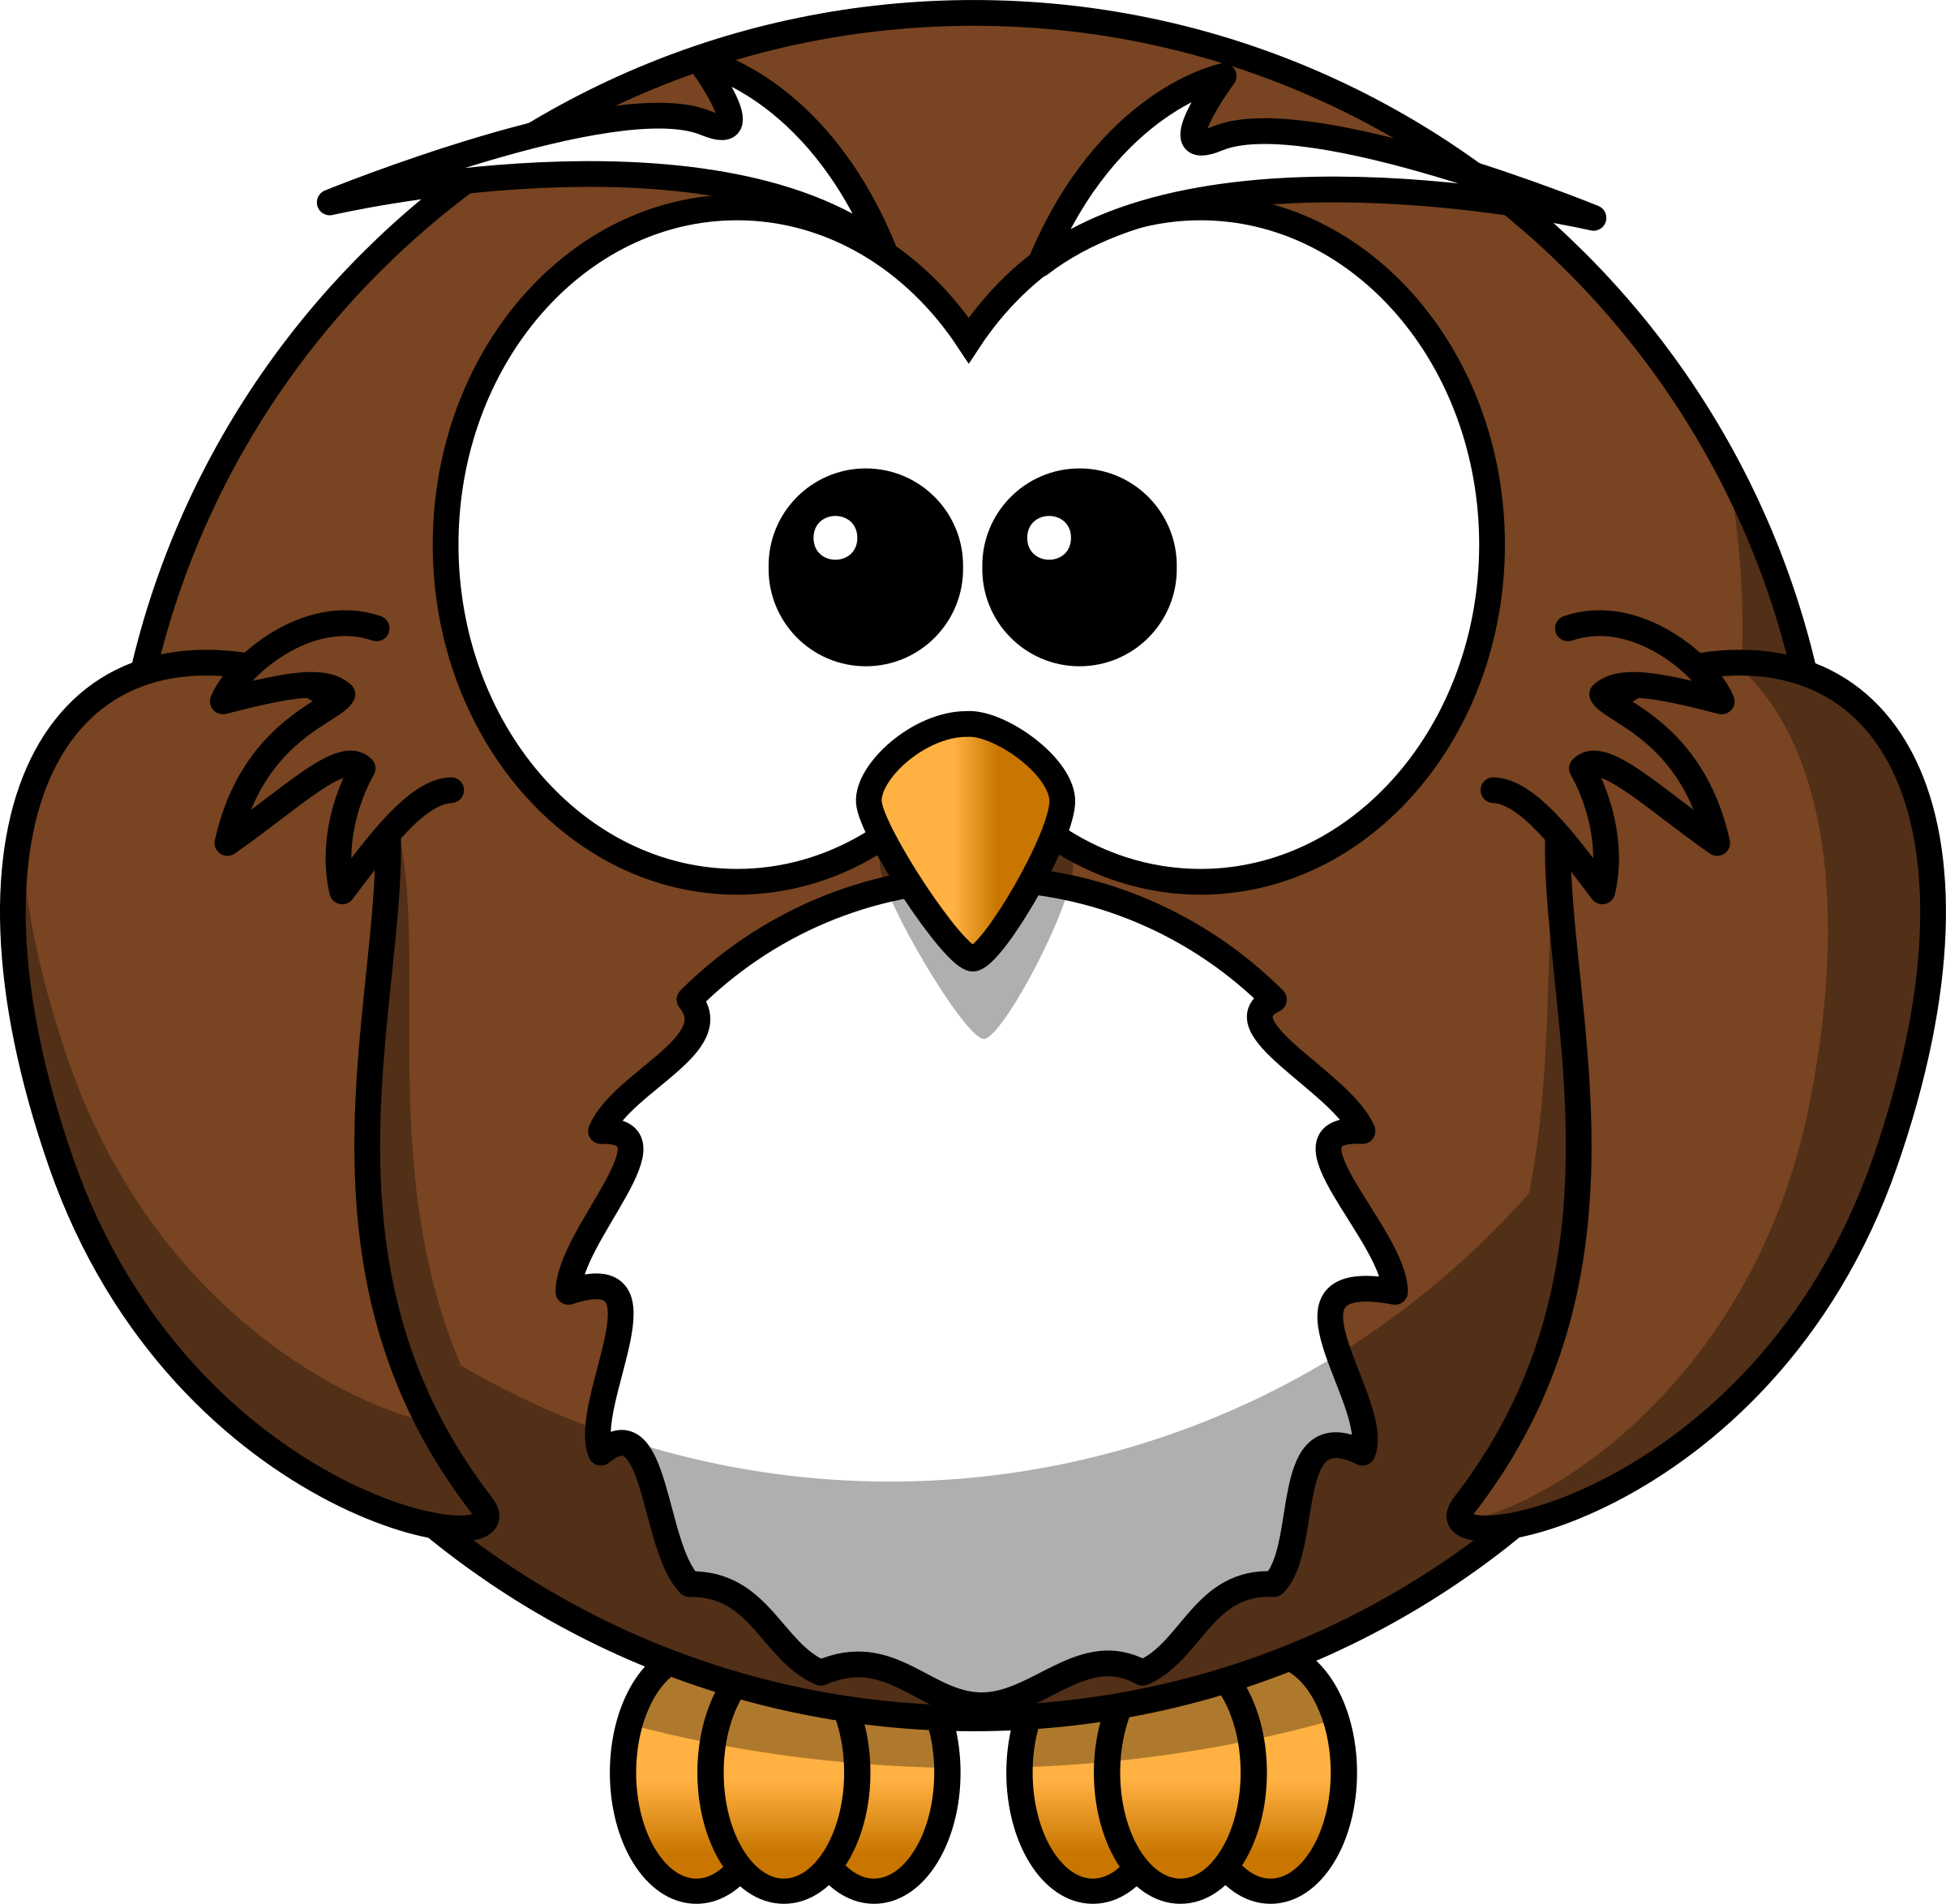 Owl mouth open clipart images gallery for free download.